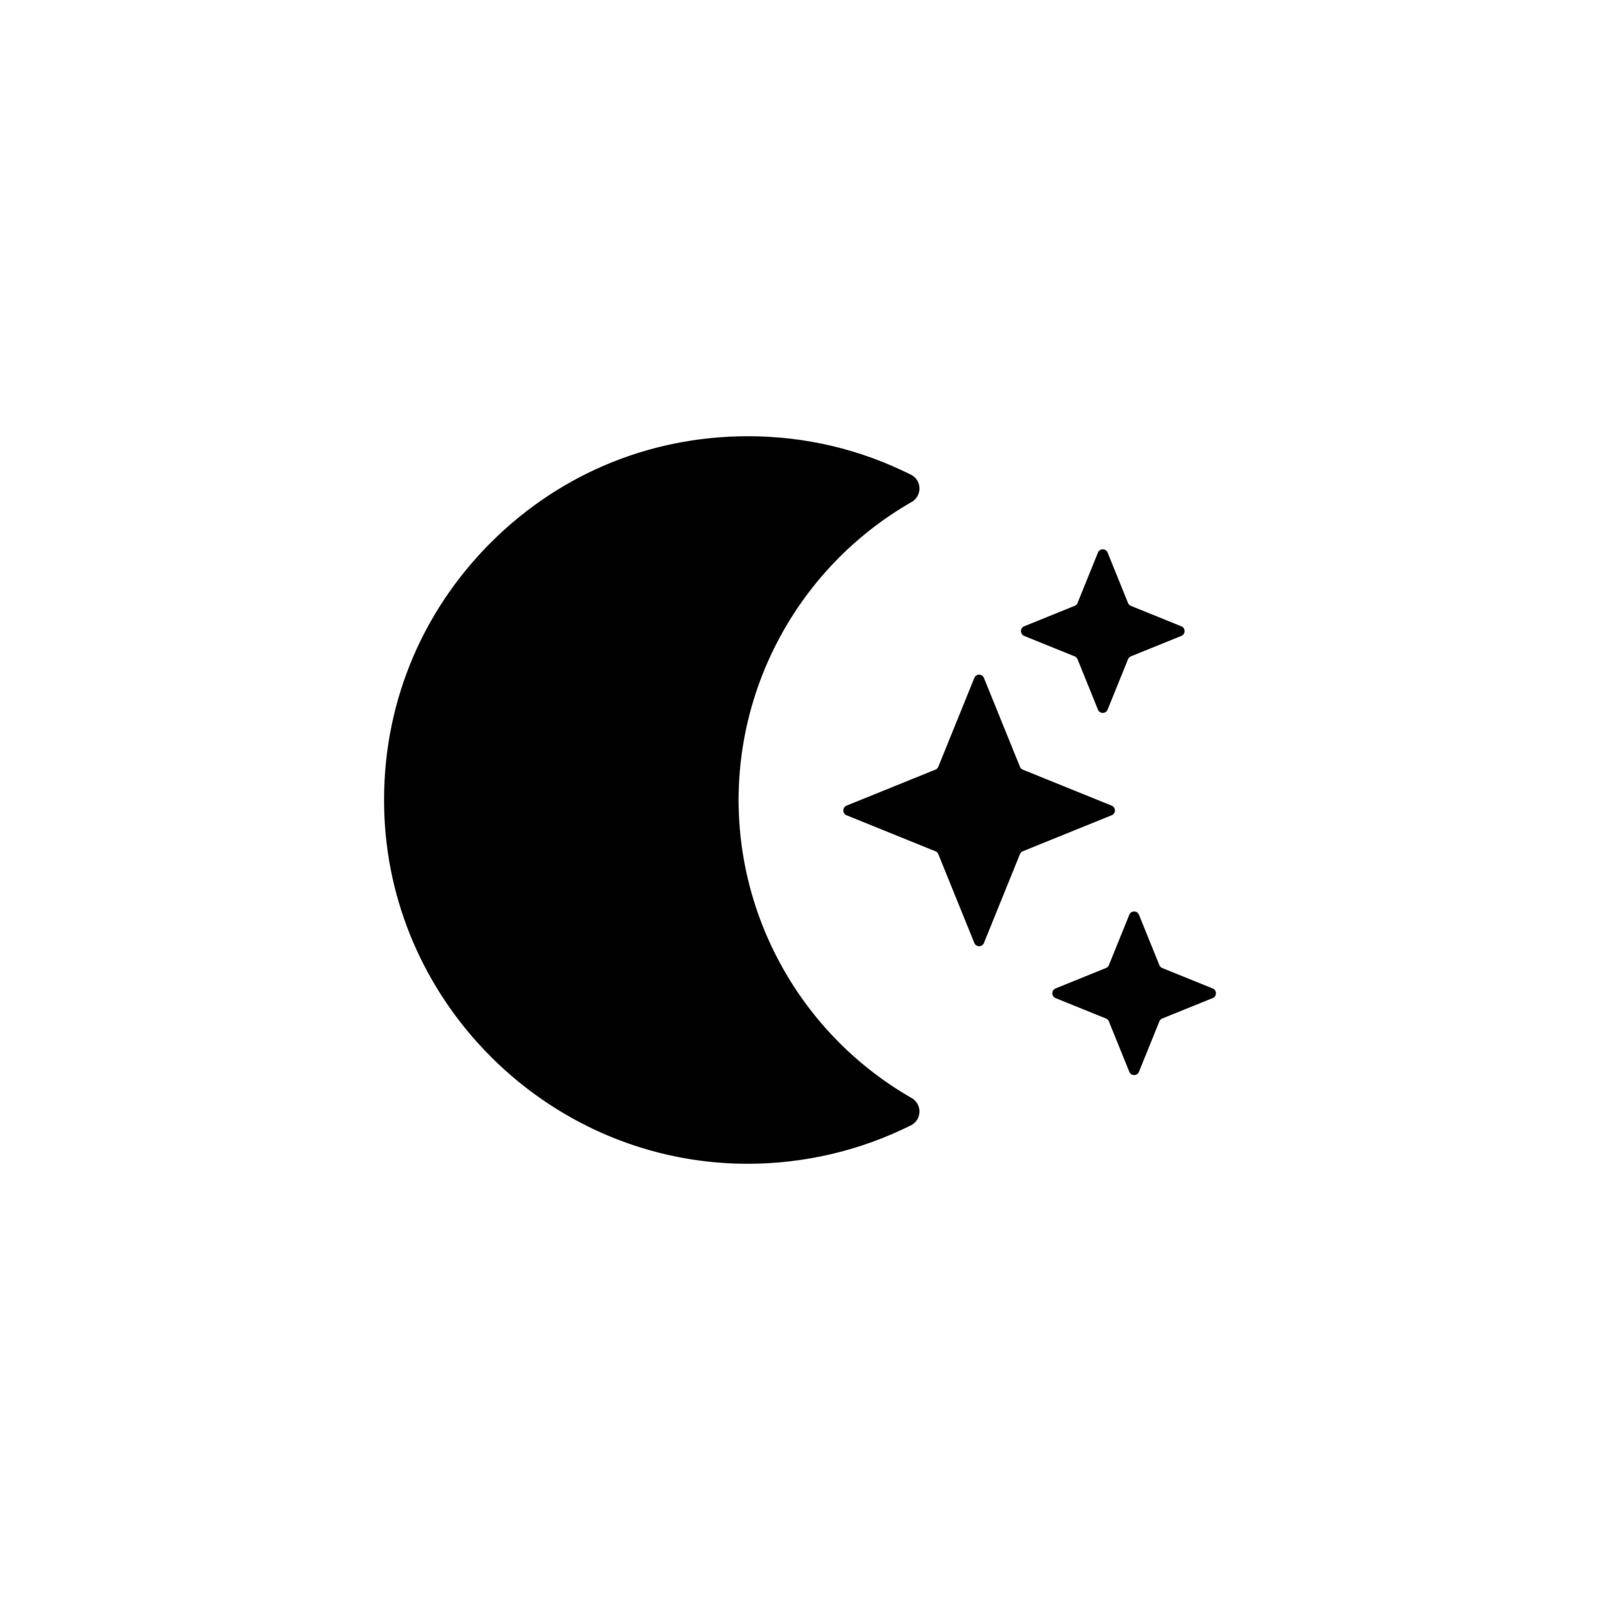 Moon and star vector glyph icon. Meteorology sign. Graph symbol for travel, tourism and weather web site and apps design, logo, app, UI